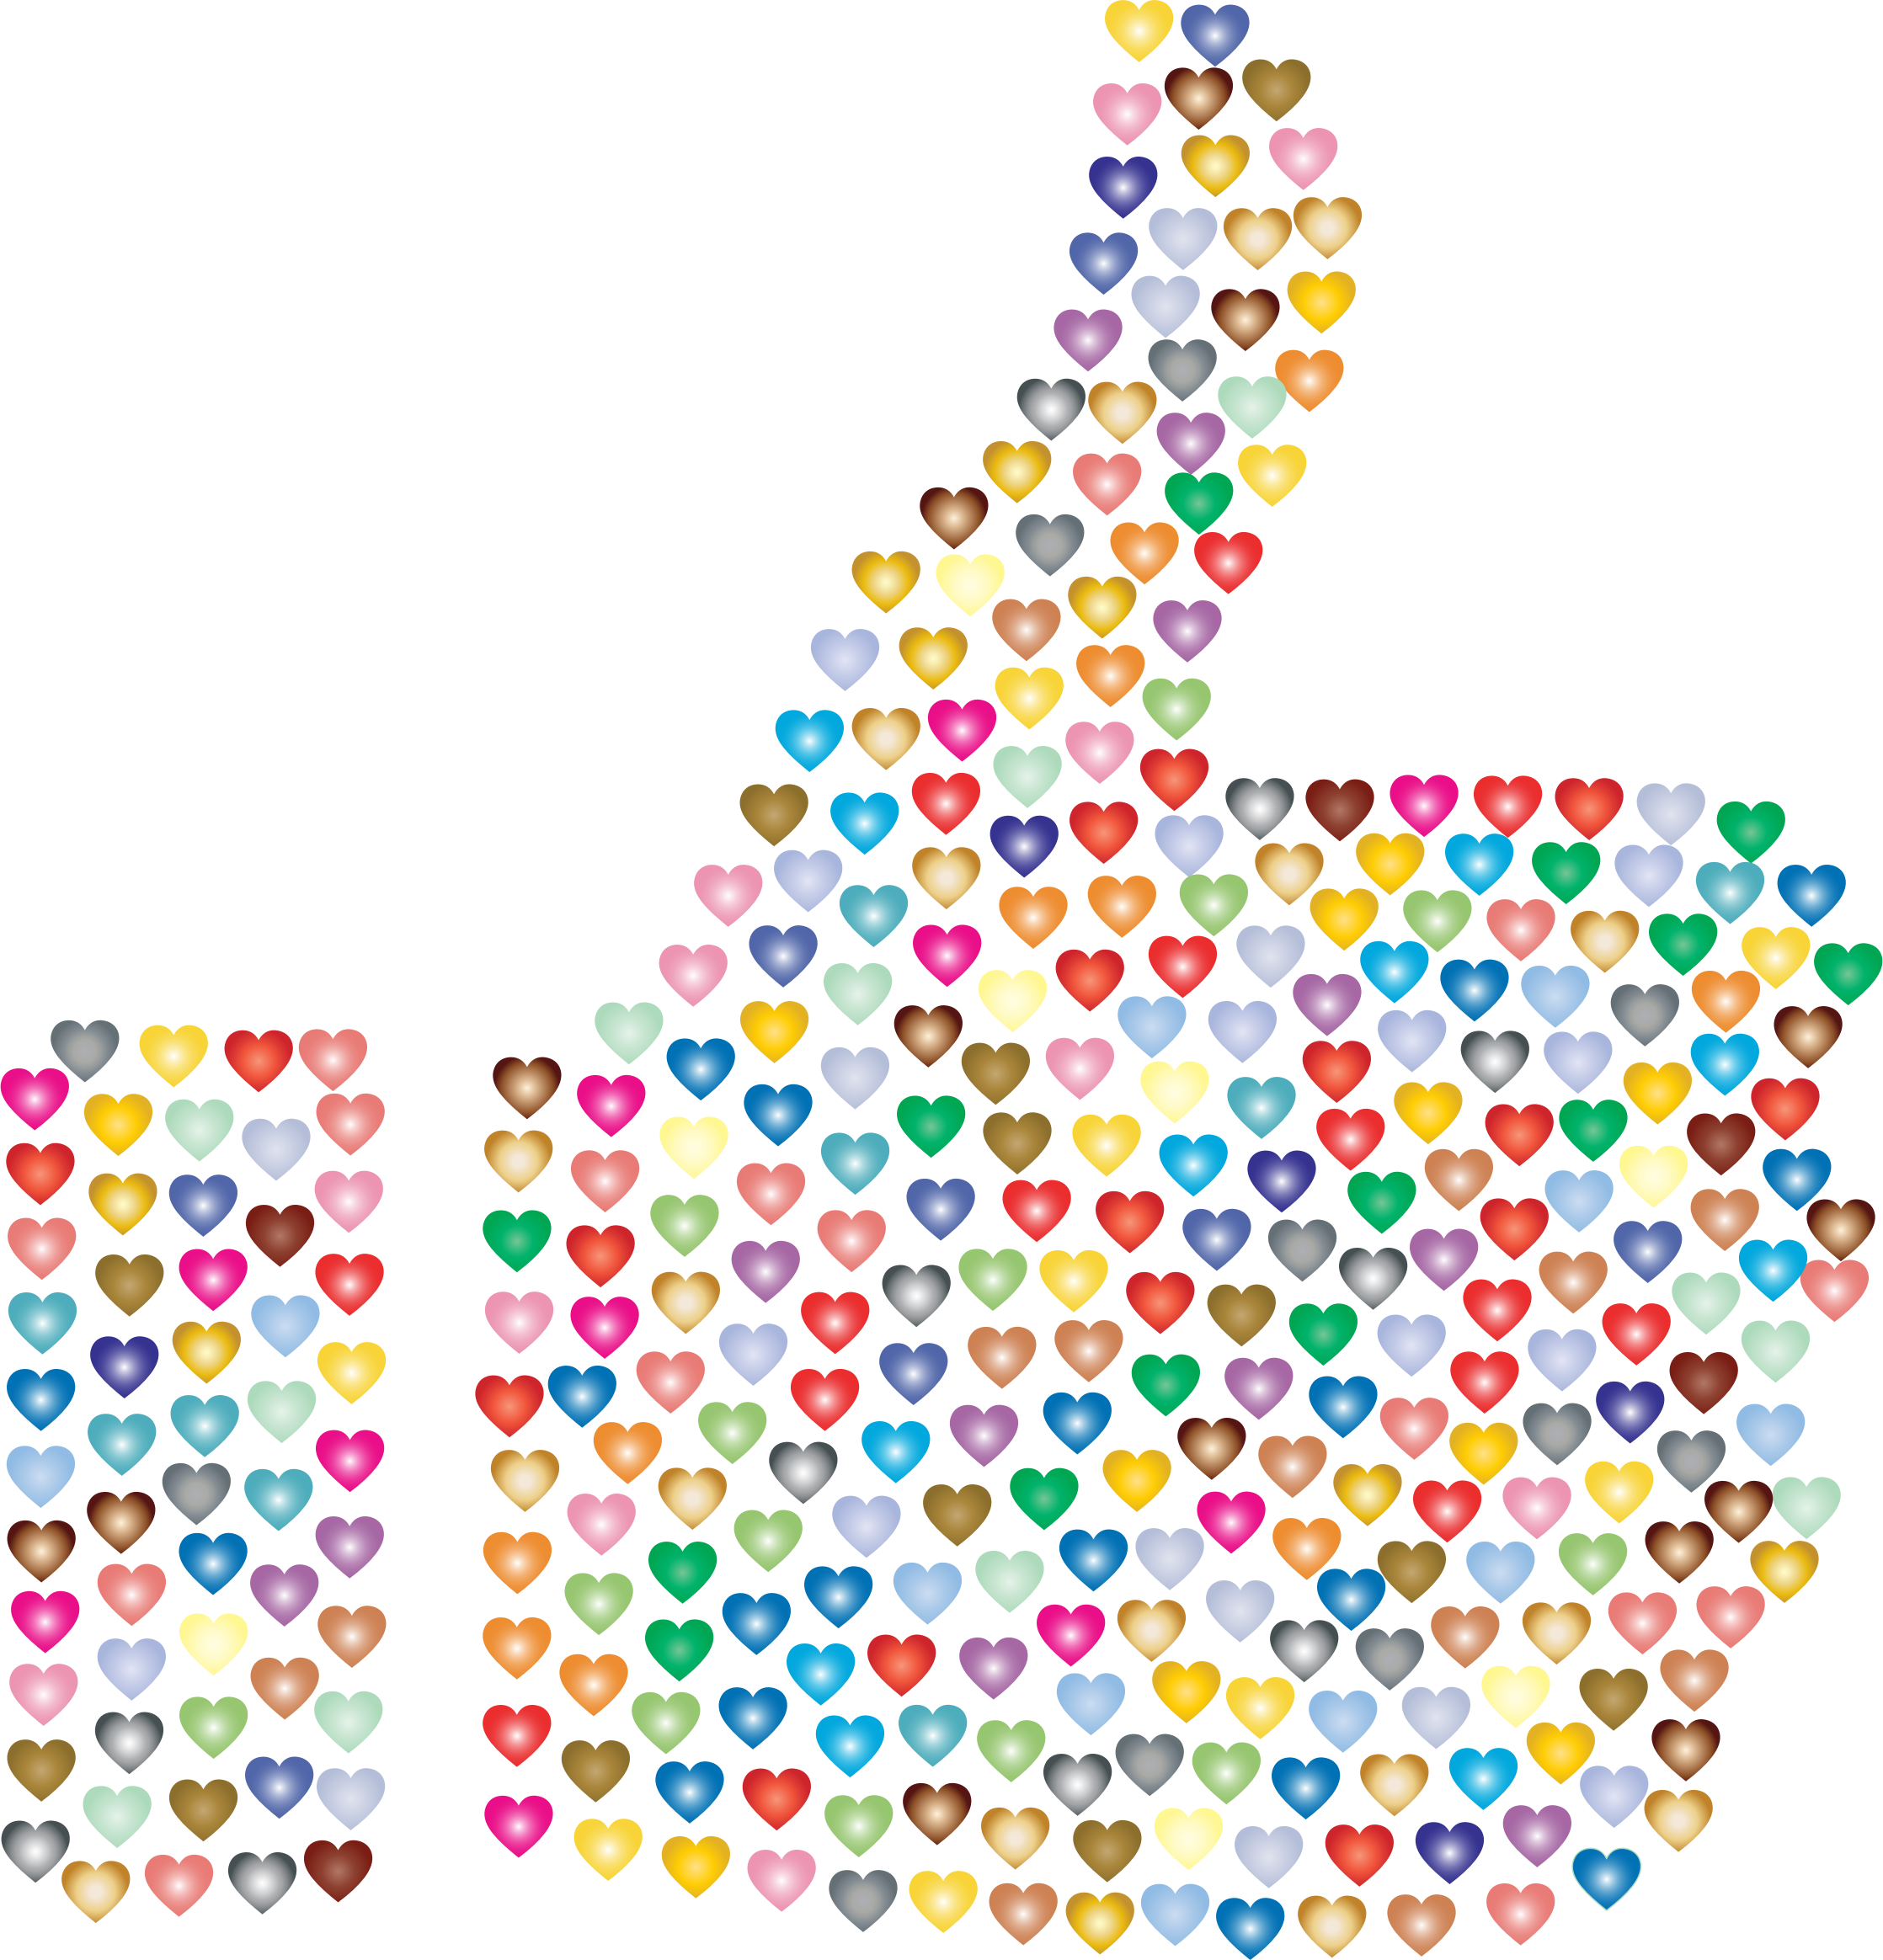 Clipart thumbs up silhouette graphic stock Clipart - Prismatic Hearts Thumbs Up Silhouette 3 No Background graphic stock